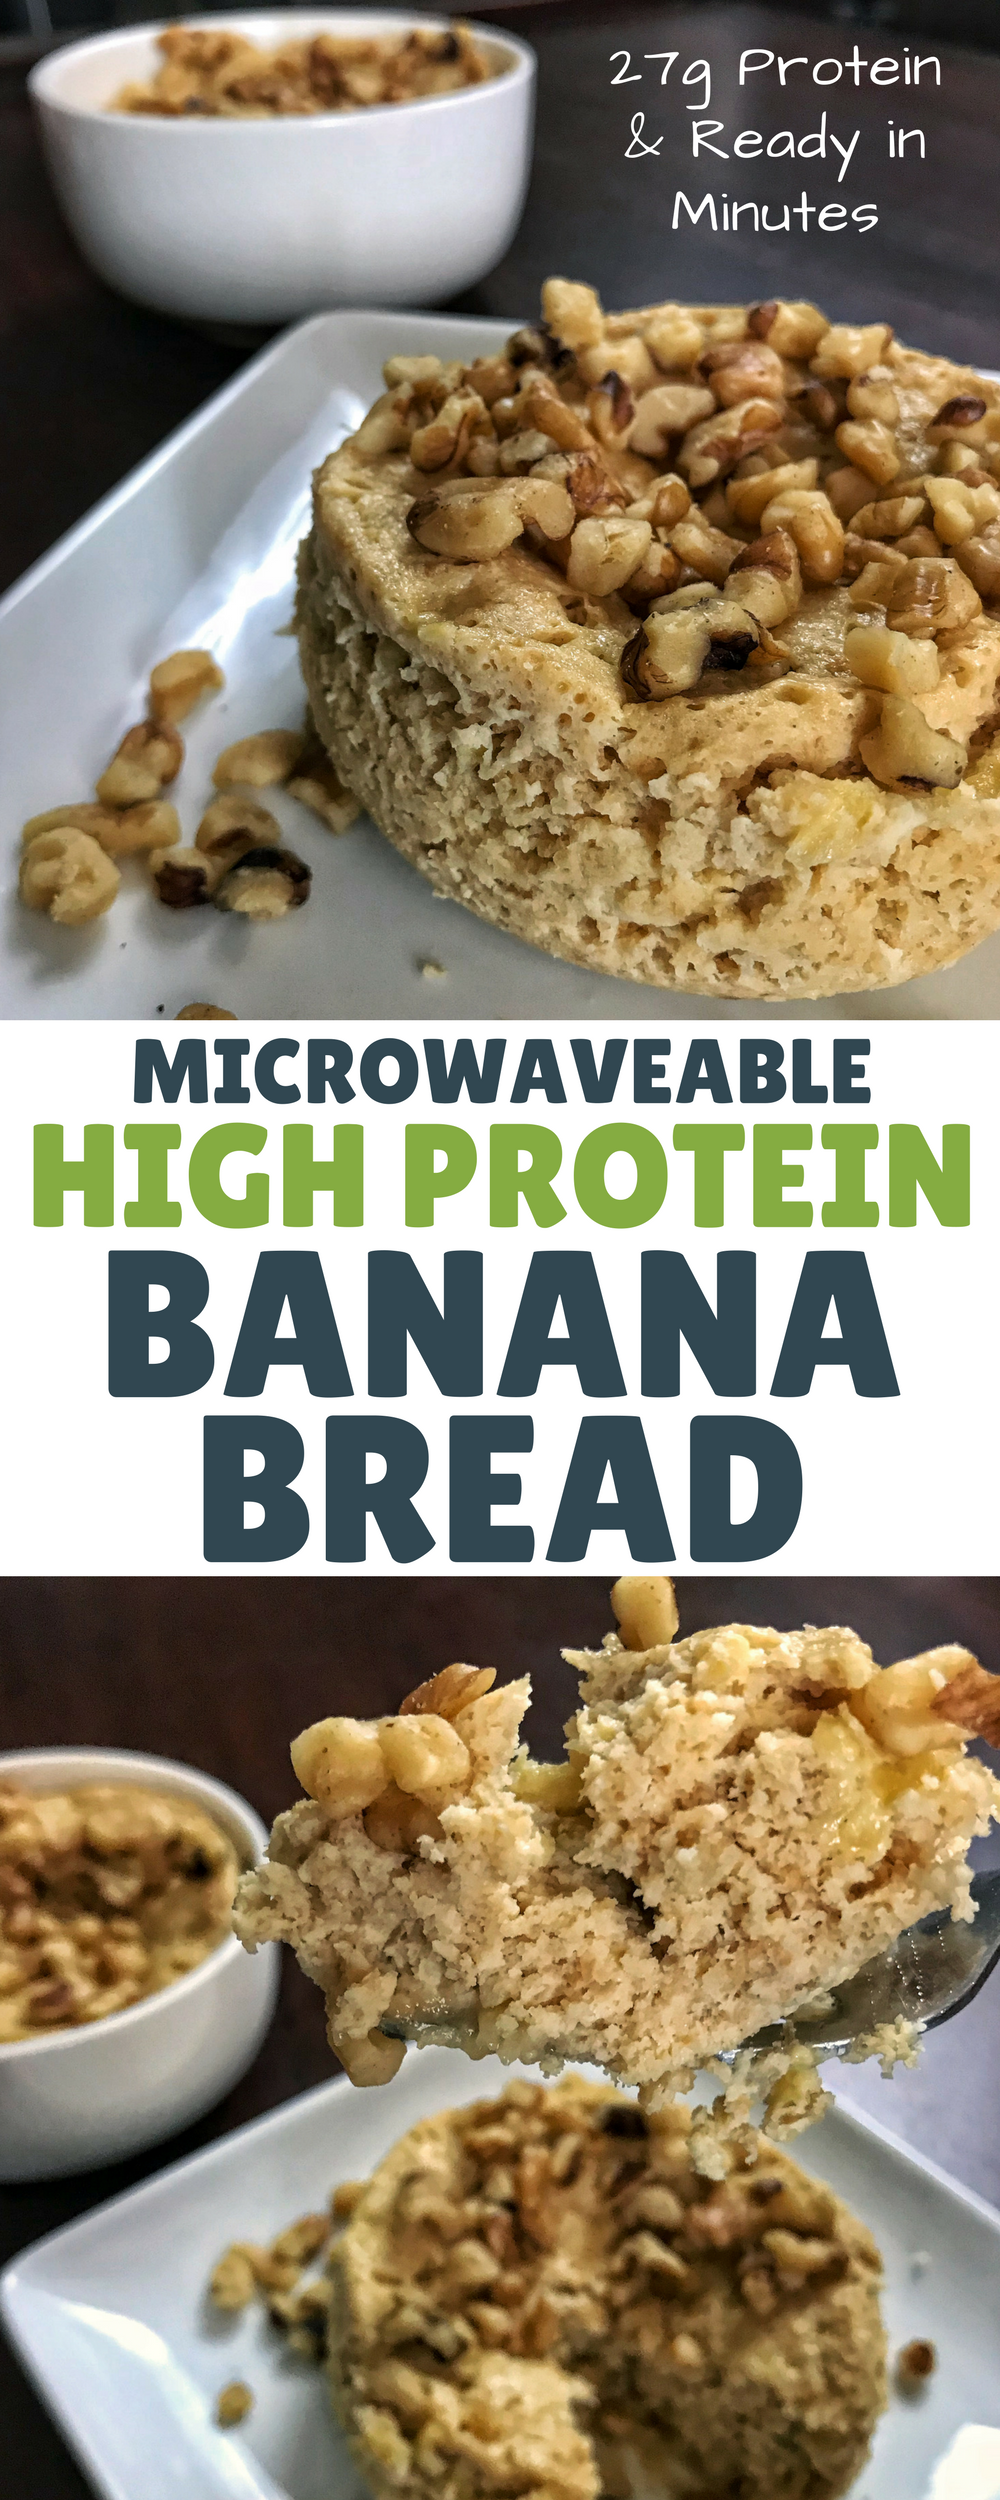 With 27 Grams Of Protein And Only 5 Ingredients, This Microwaveable High  Protein Banana Bread